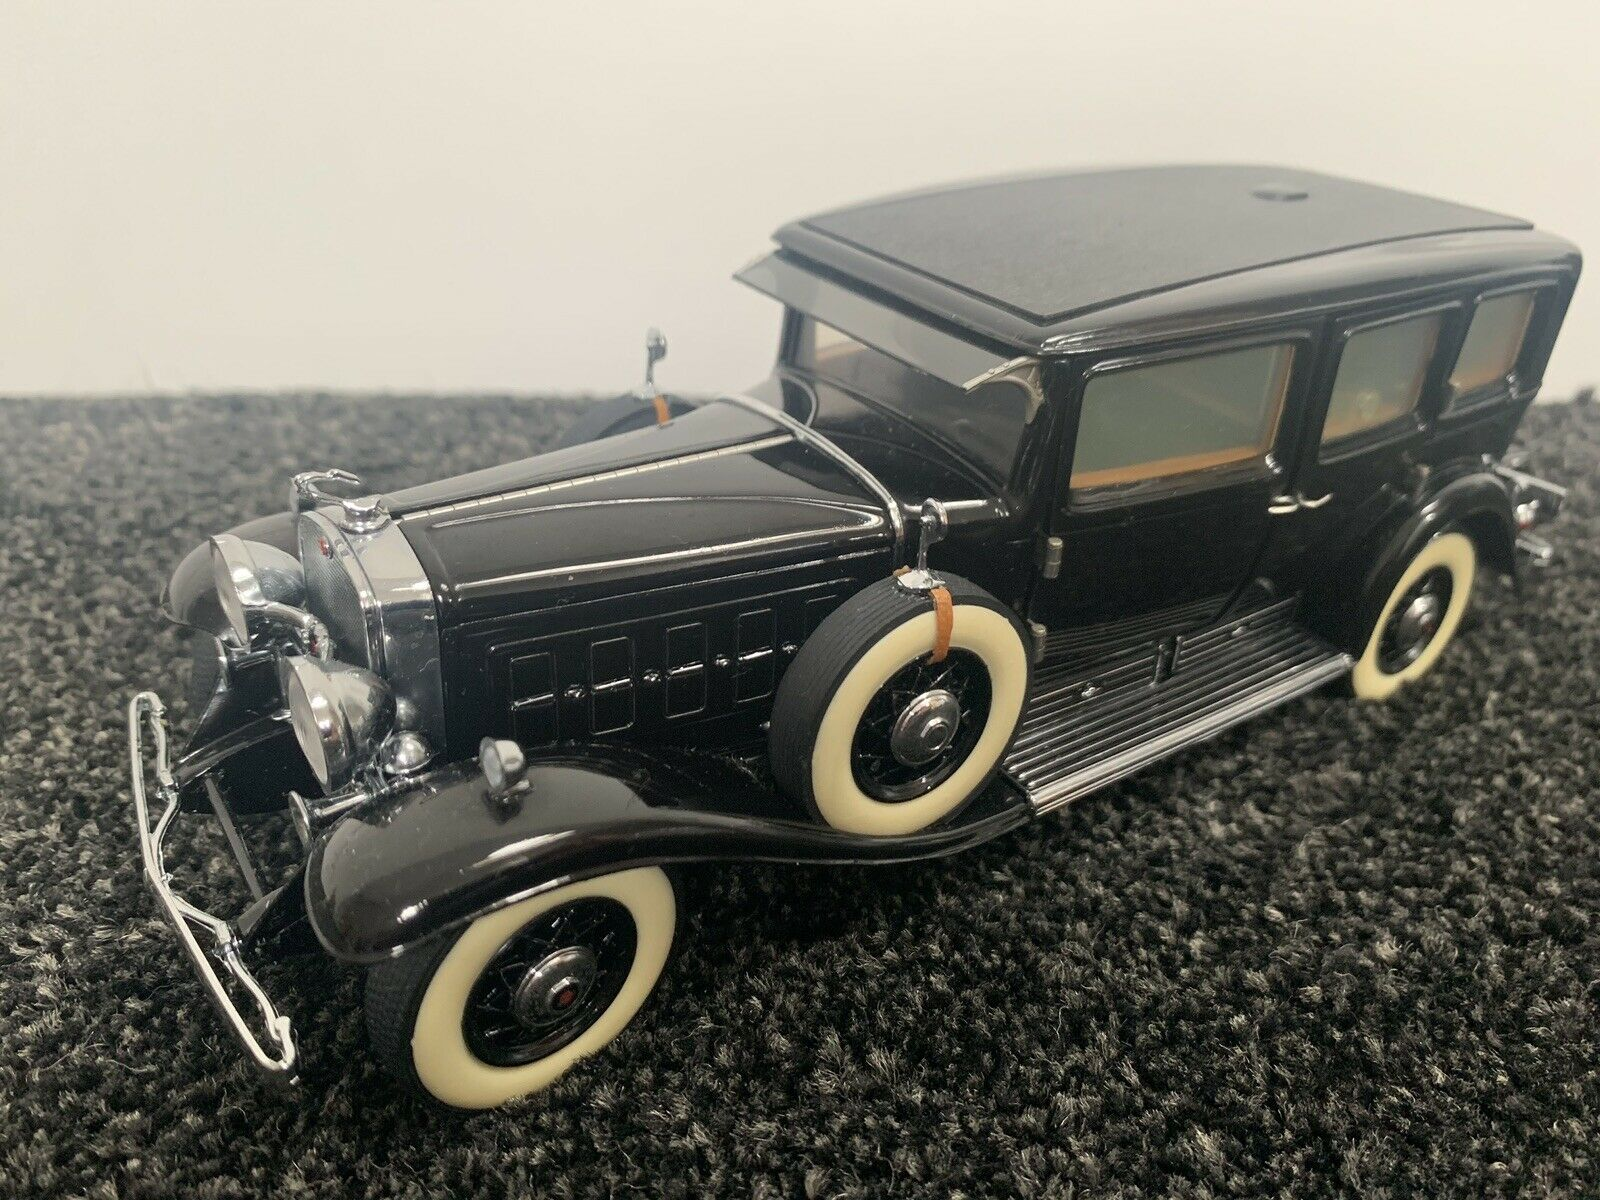 FRANKLIN Comme neuf voiture 1930 CADILLAC